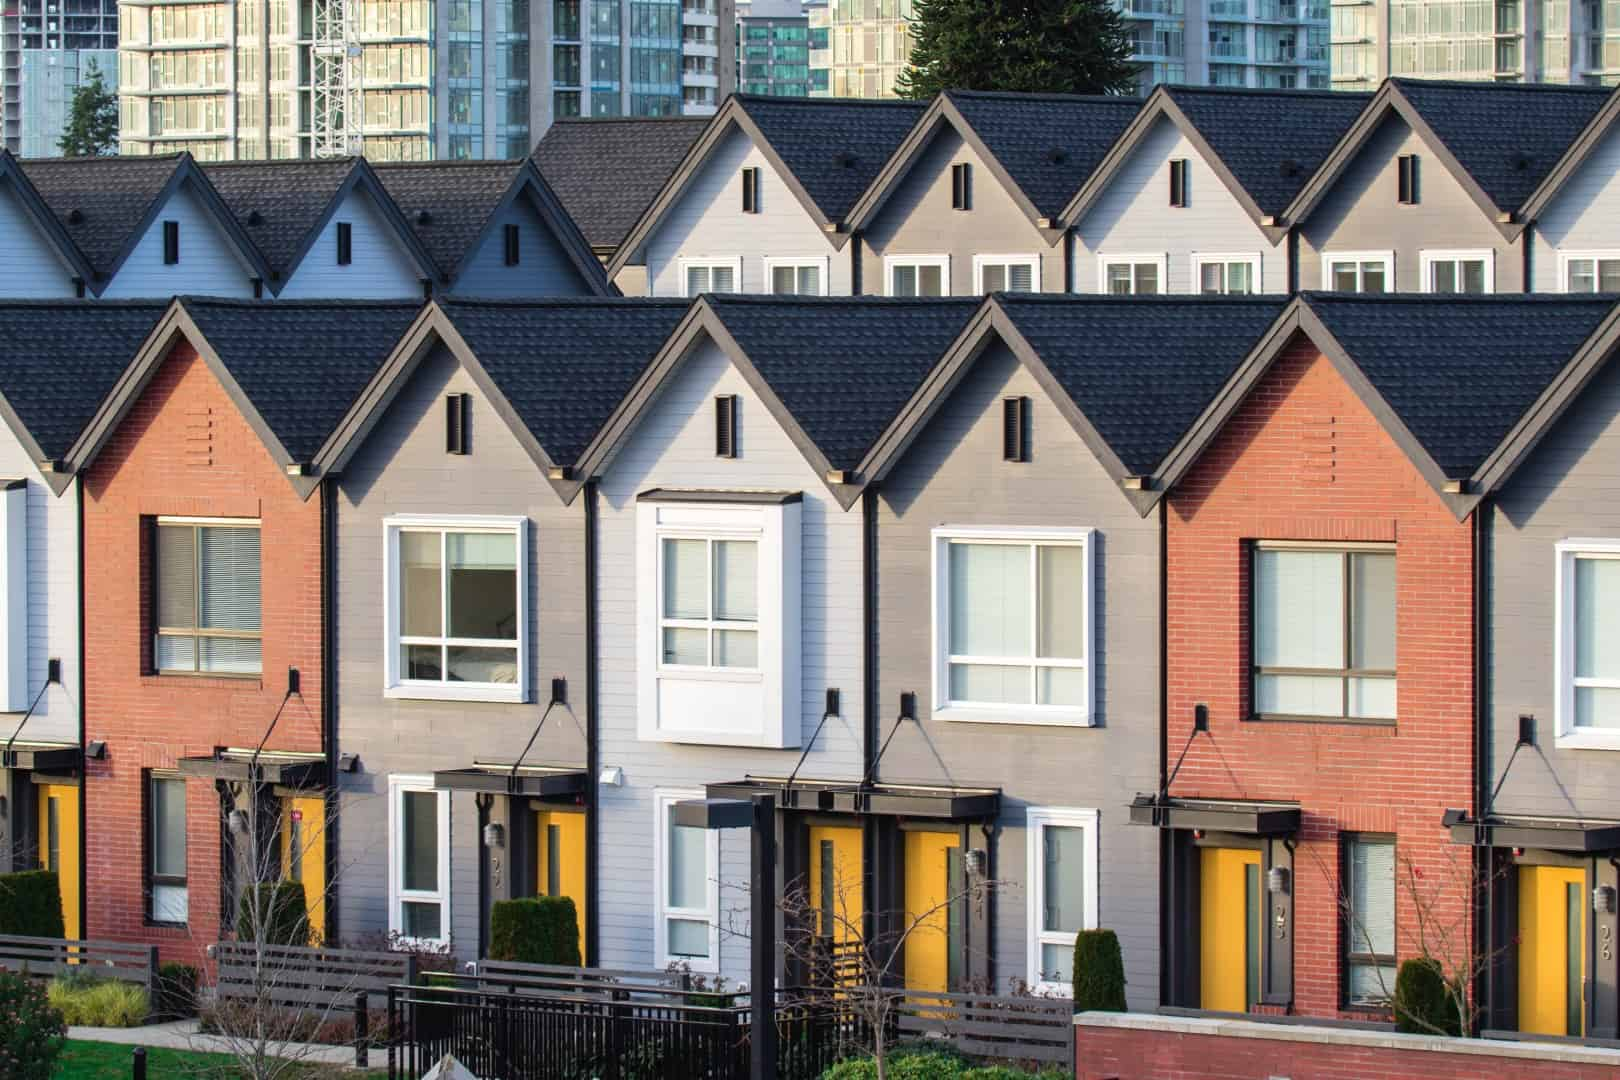 Row of townhouses in Vancouver